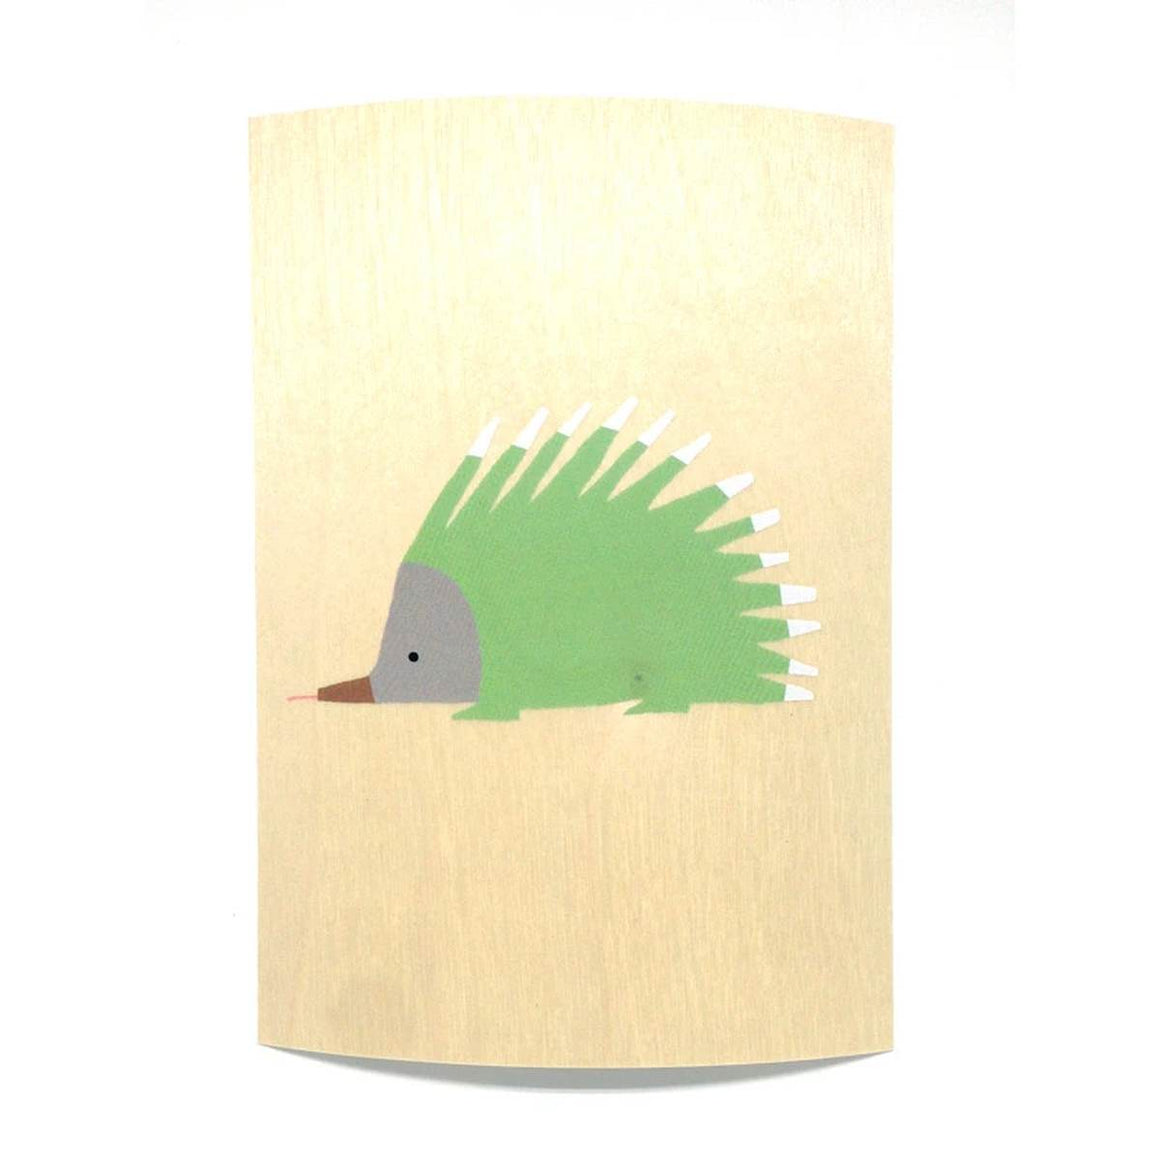 A wooden postcard showing a an illustration of an echidna in green, white, grey and brown. The background is a natural light wood grain.